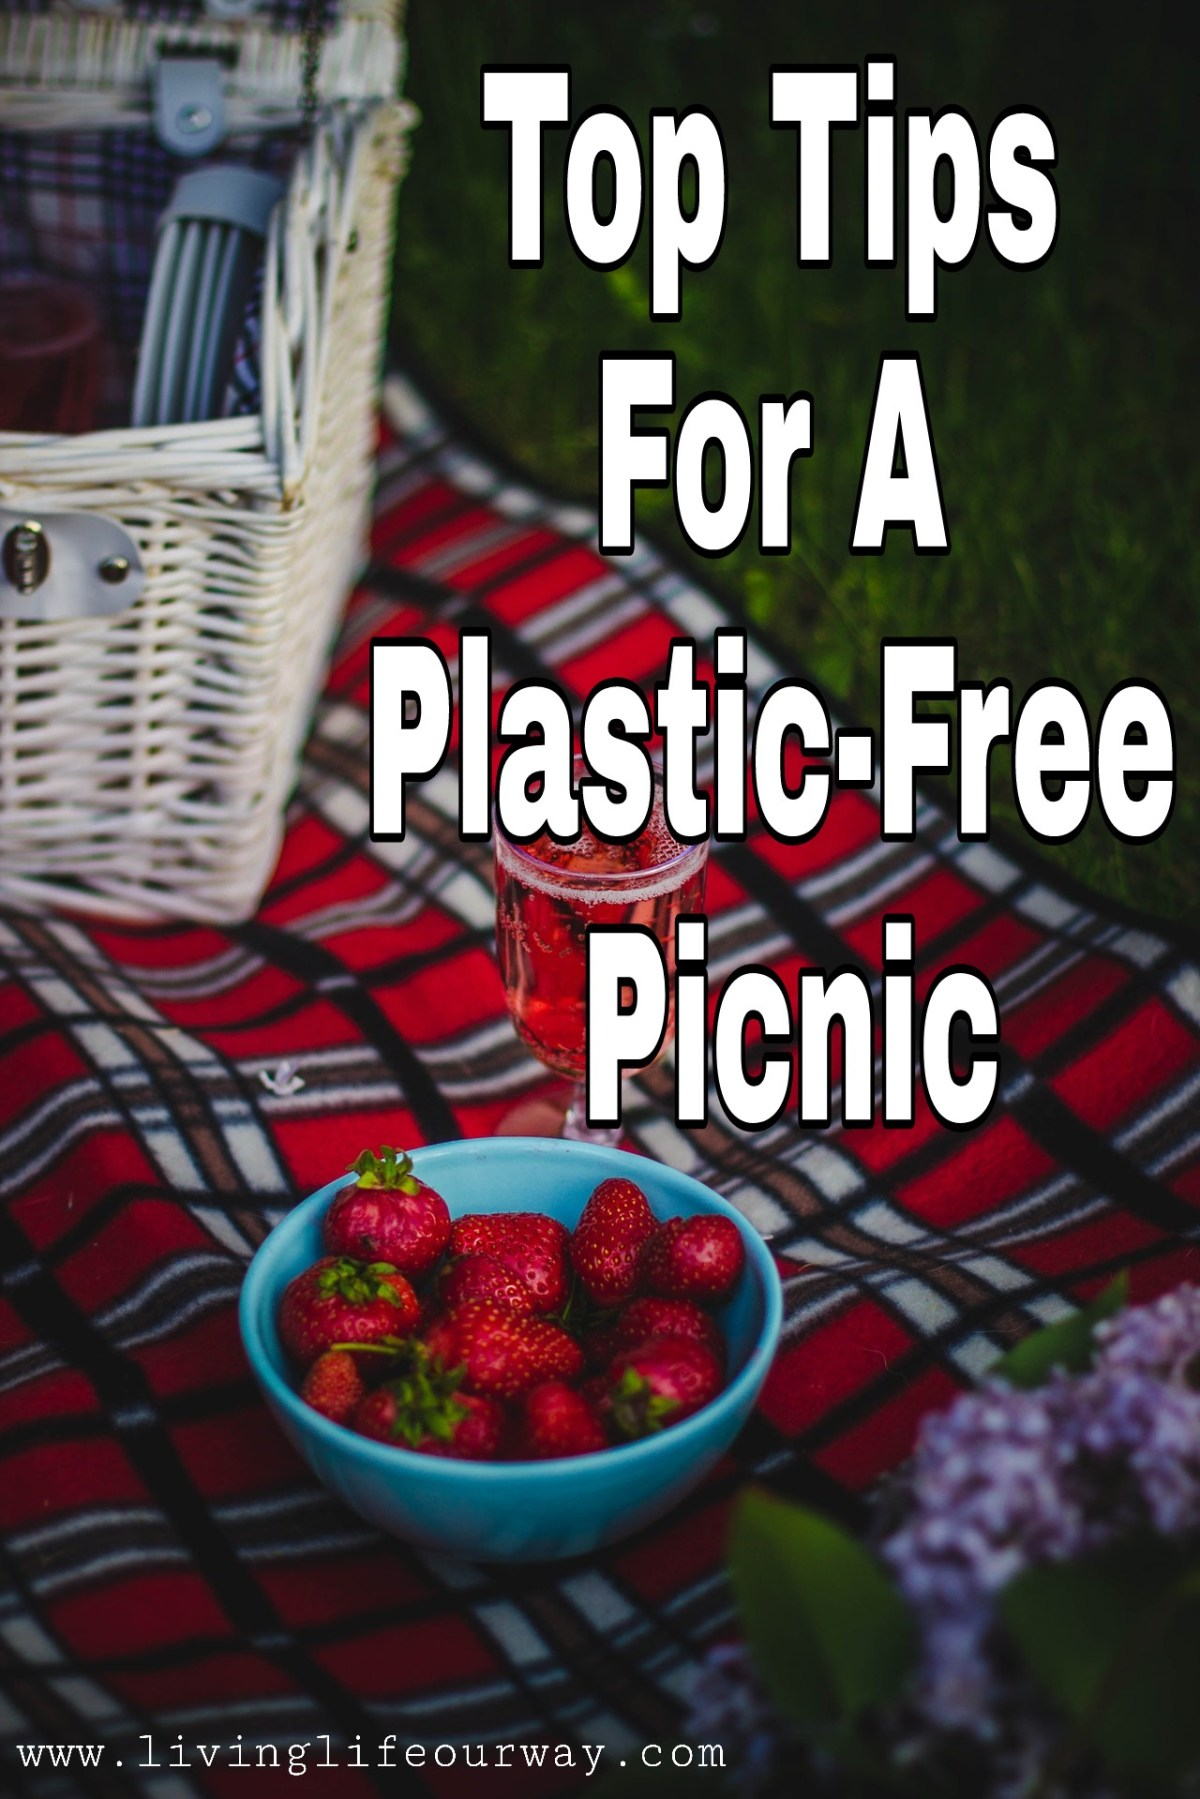 Top Tips For A Plastic-Free Picnic